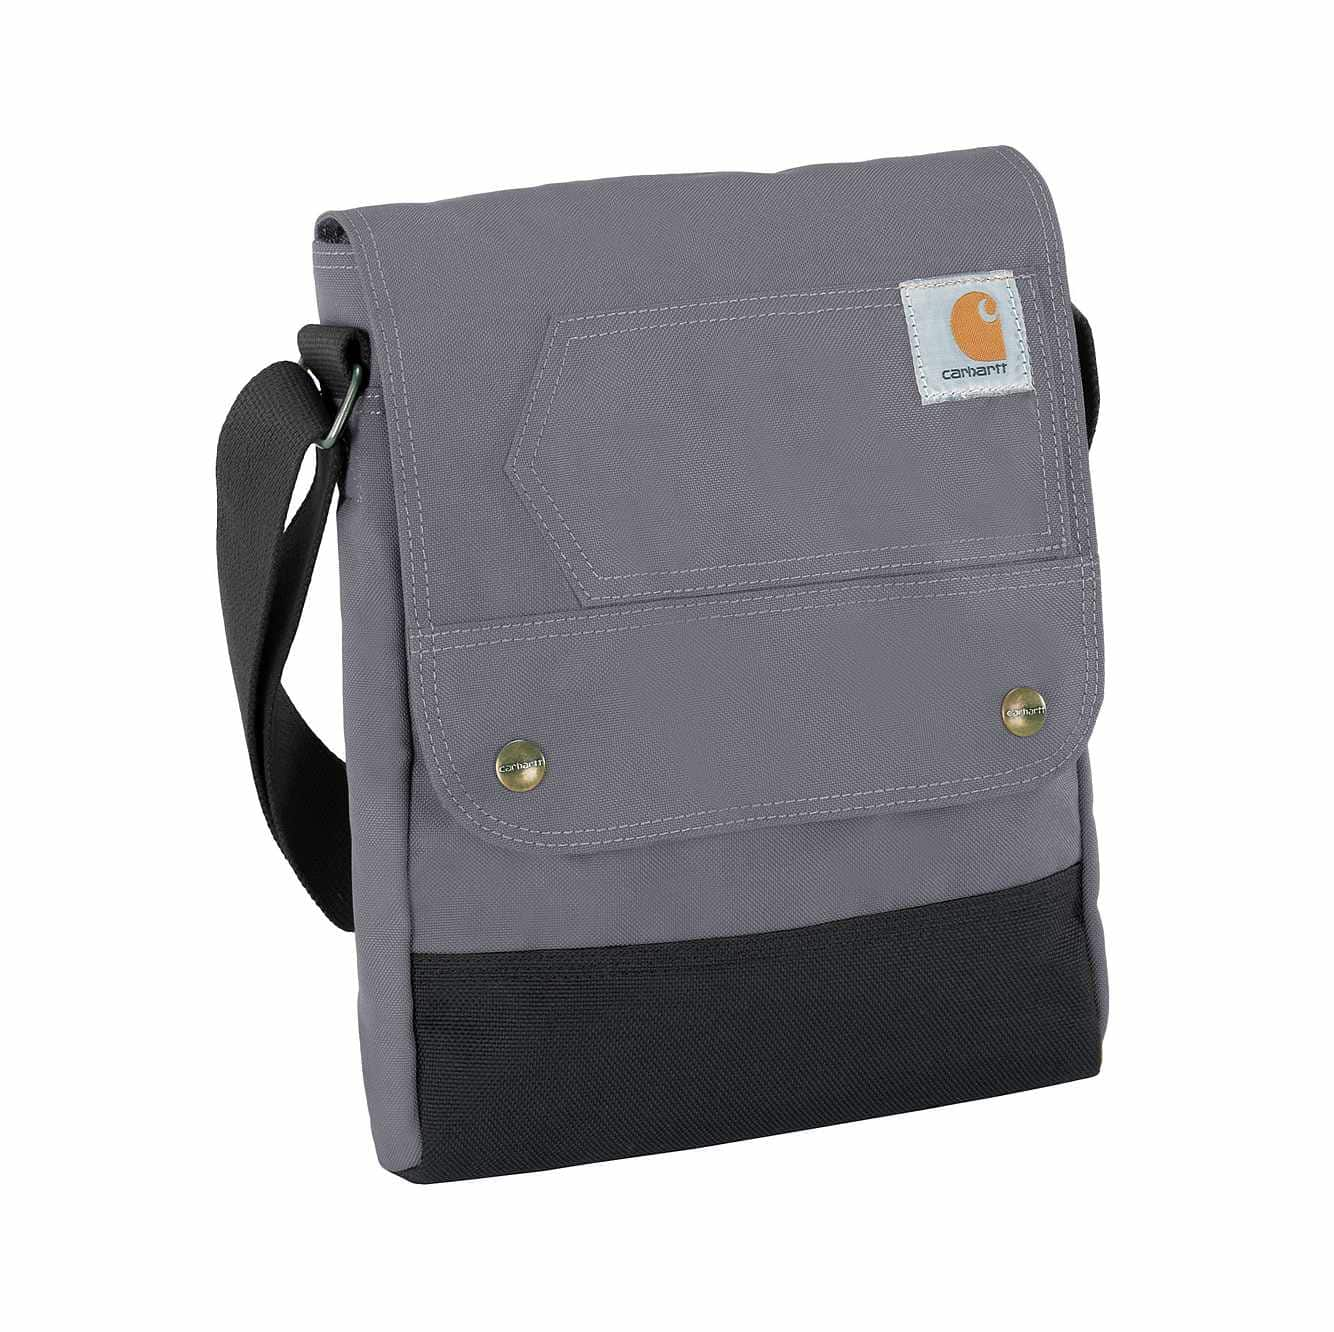 Picture of Legacy Cross Body Bag in Gray